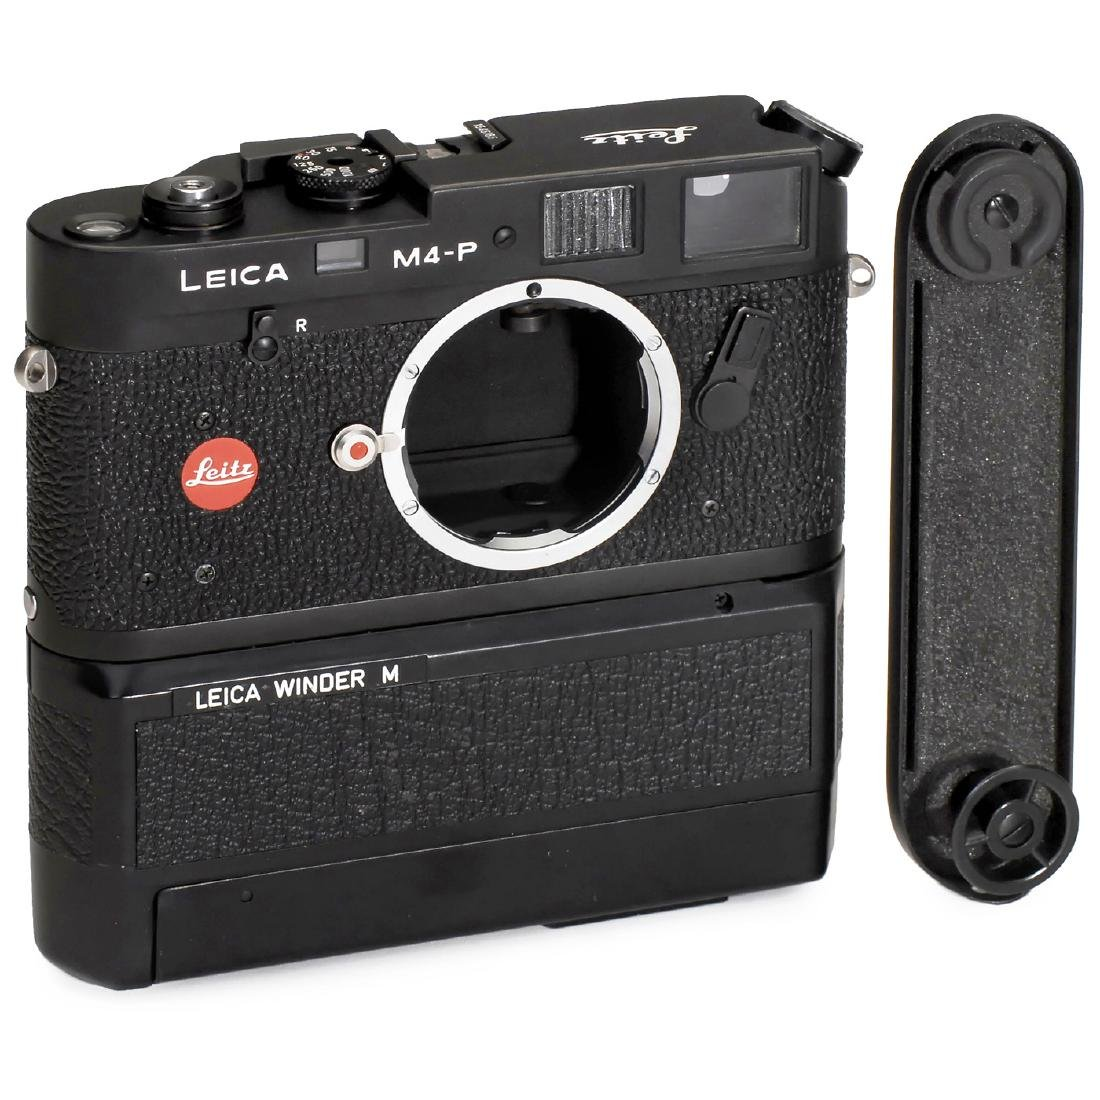 Leica M4-P with Winder M, 1981